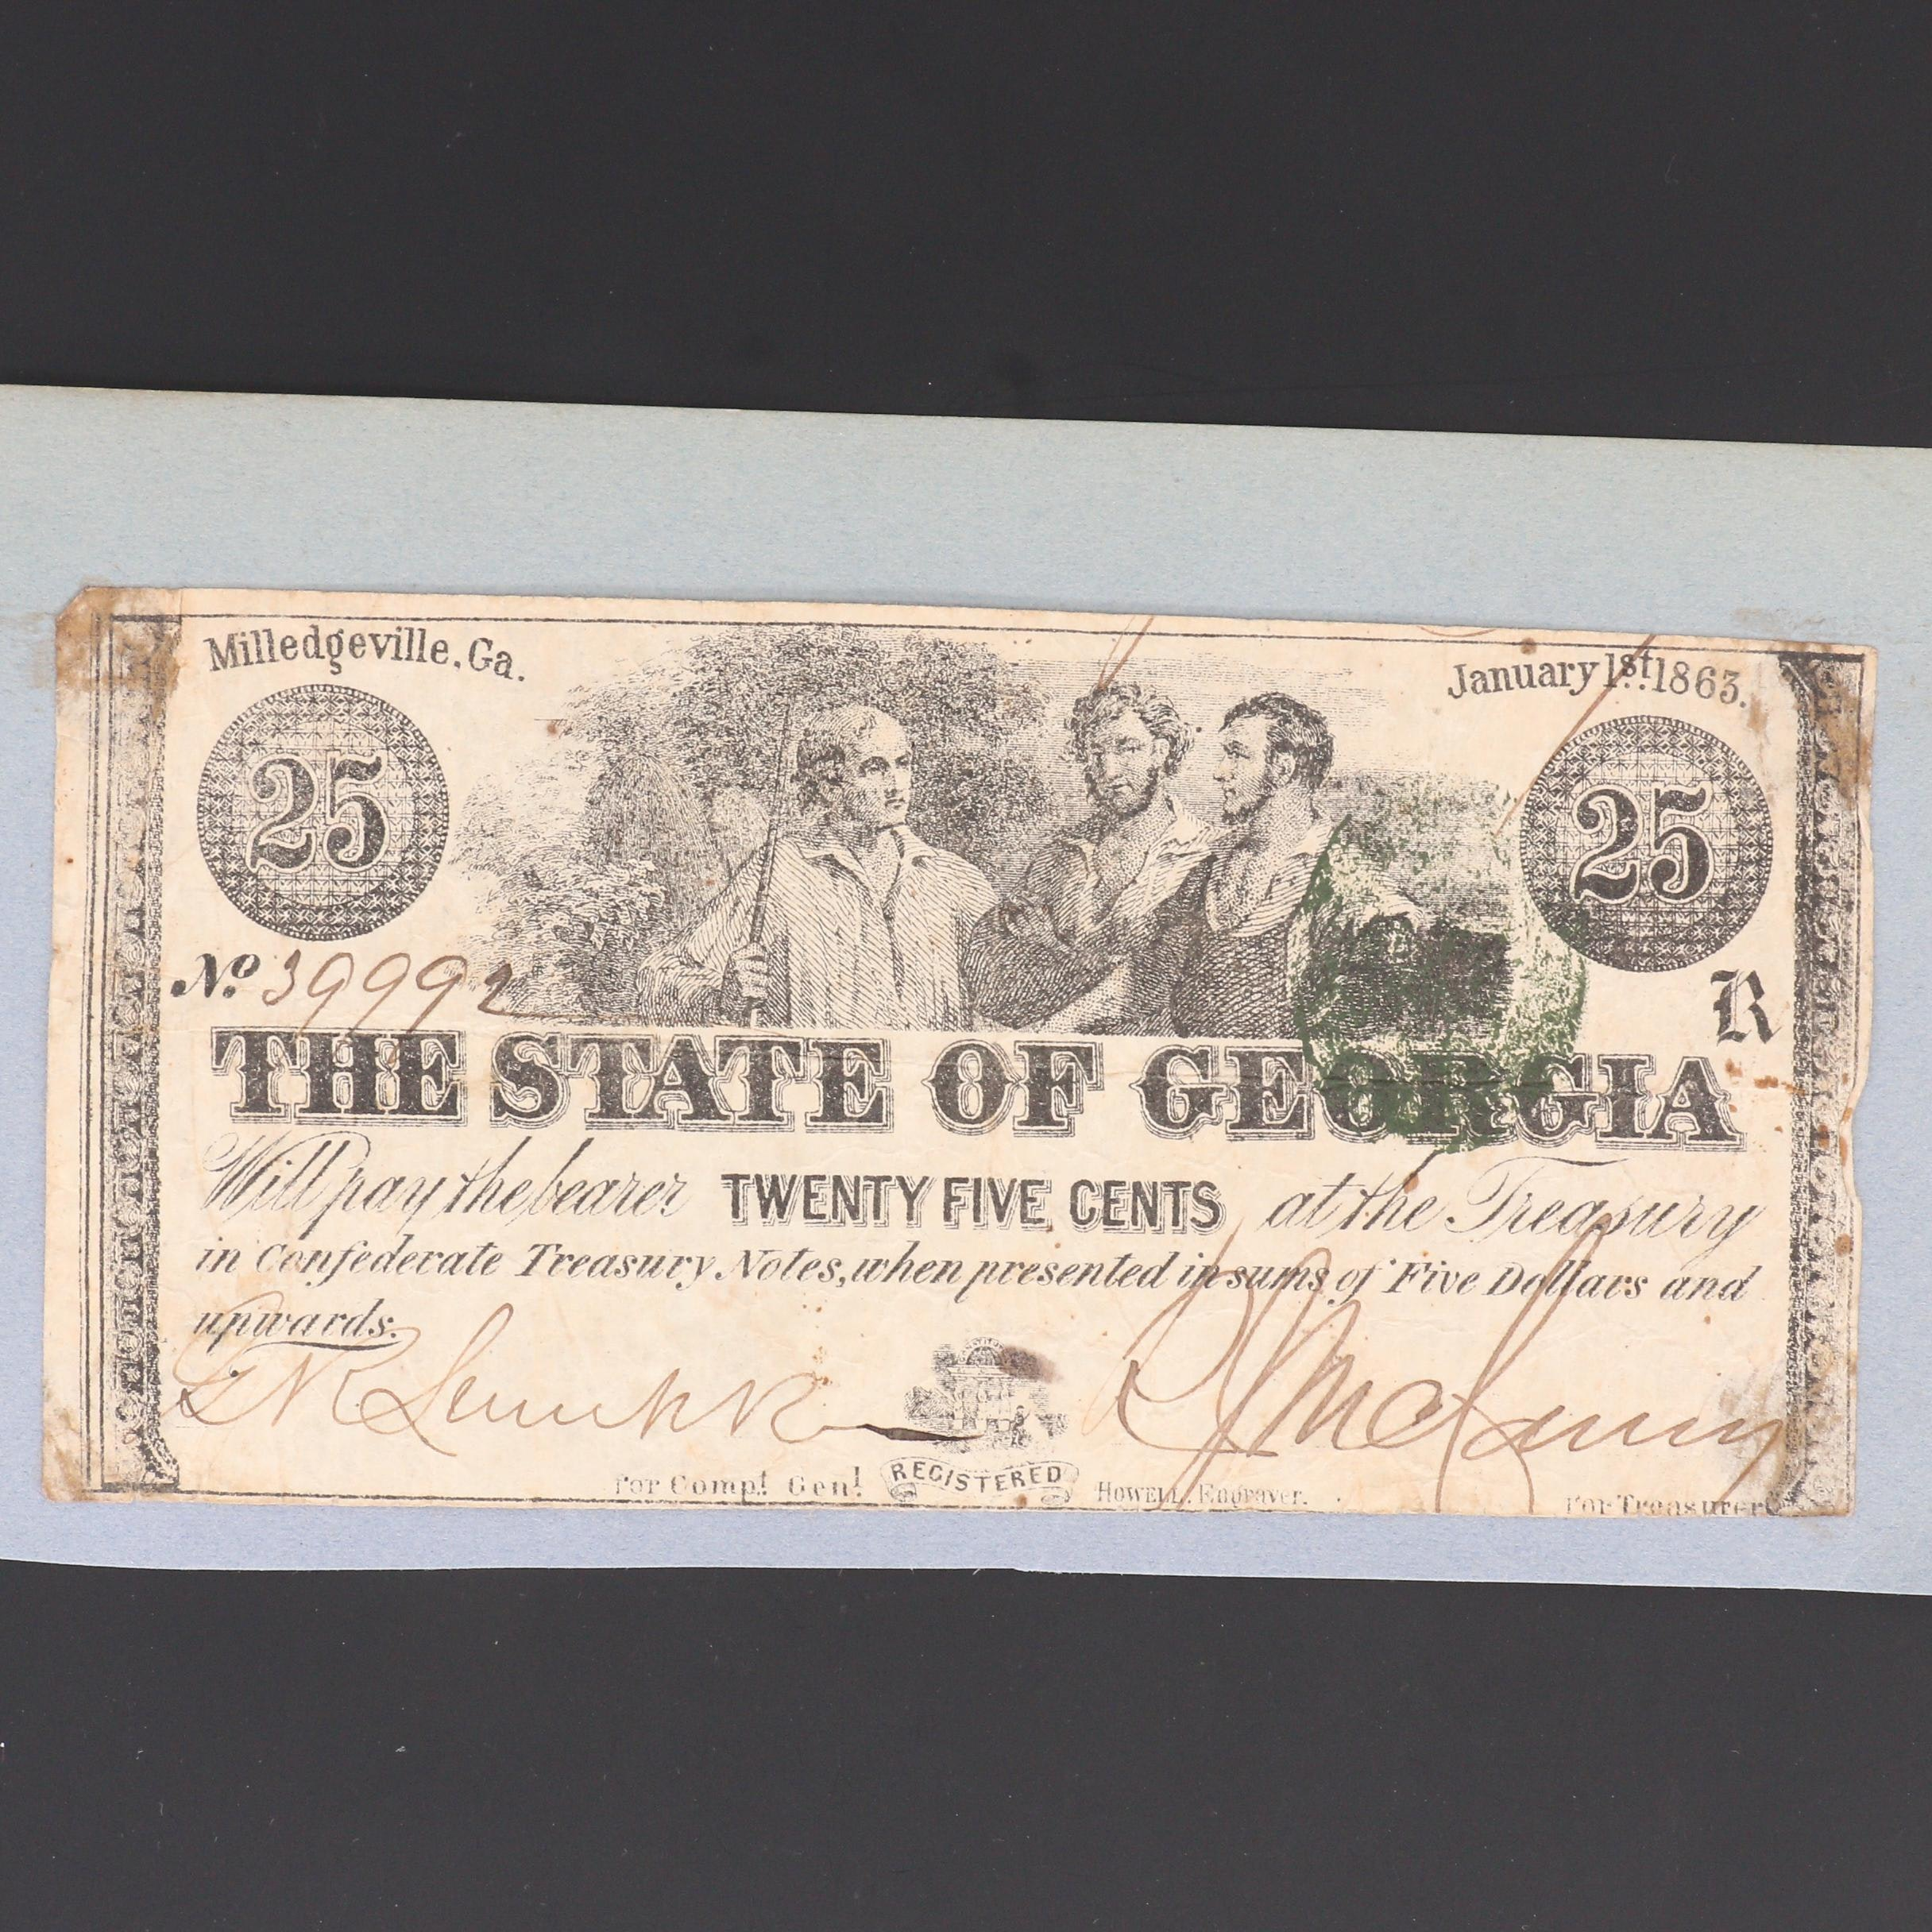 25-Cent Fractional Obsolete Banknote From Milledgeville, Georgia, 1863